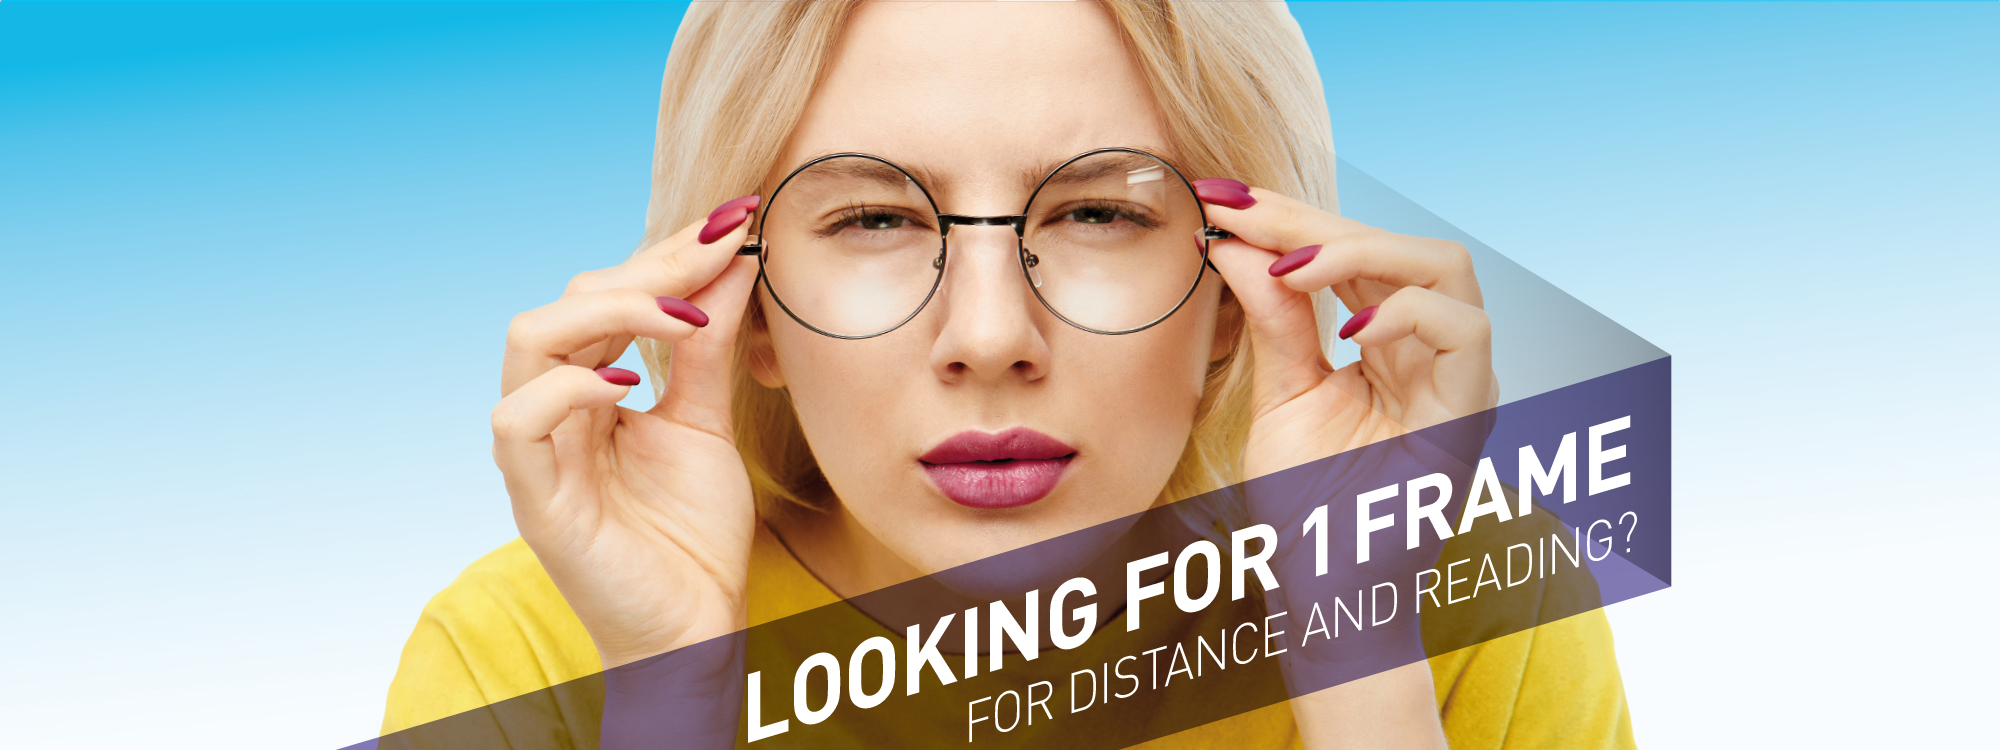 Looking for 1 pair of glasses